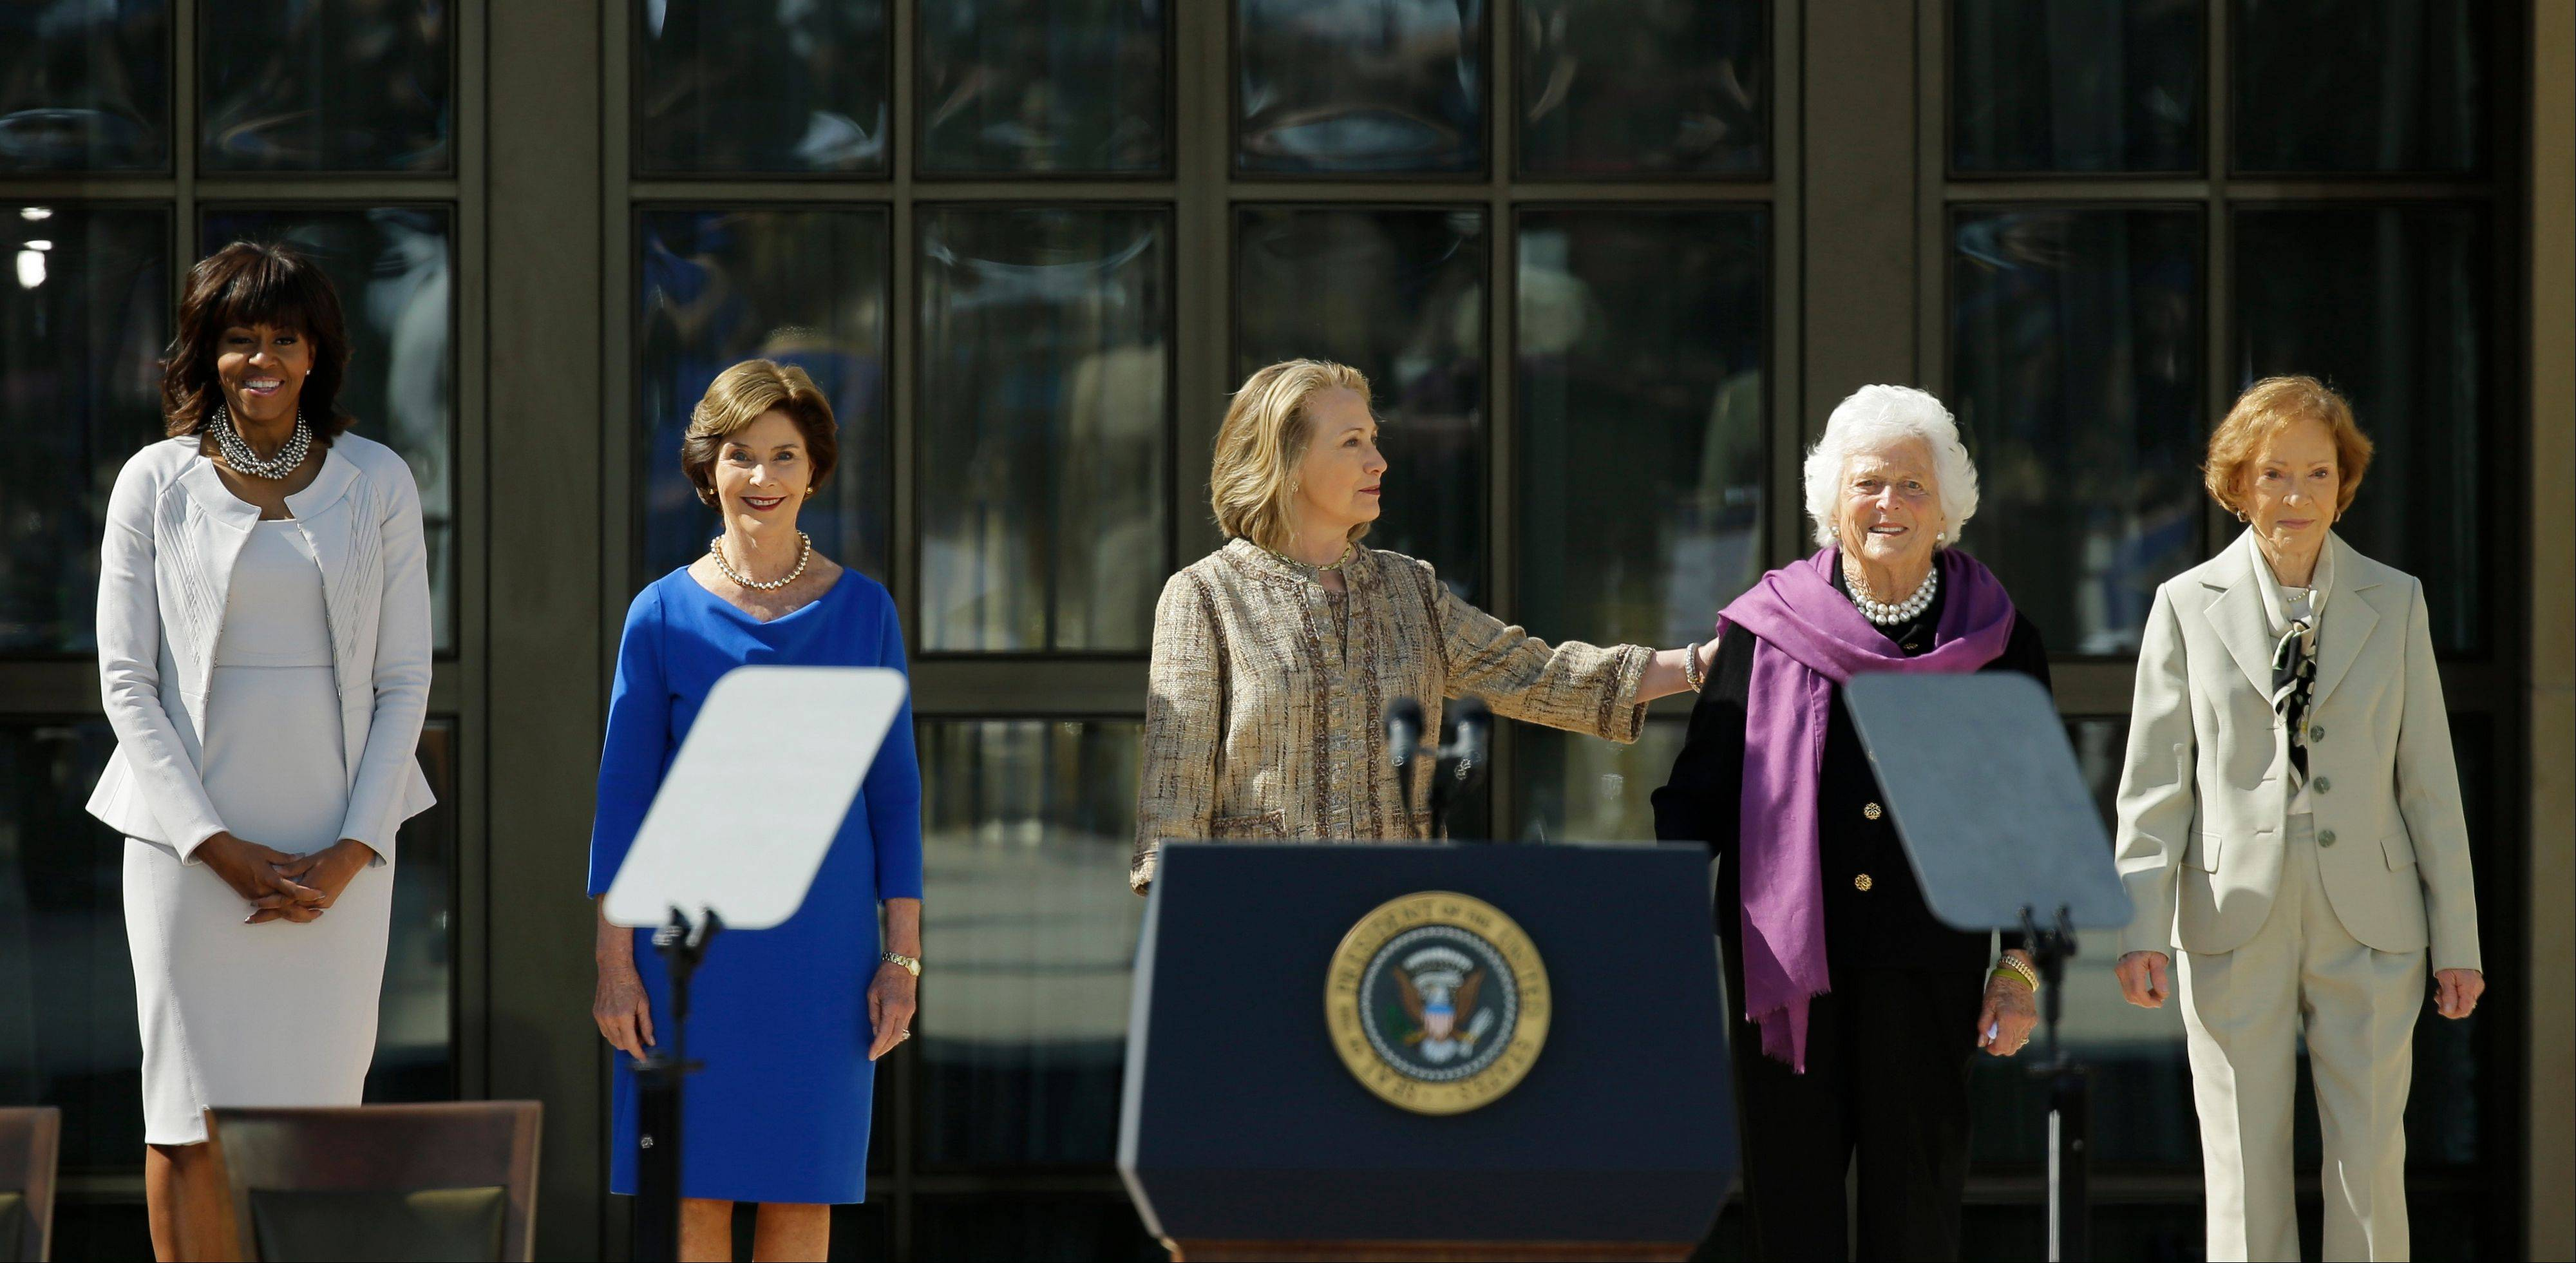 From left, first lady Michelle Obama, former first lady Laura Bush, former first lady Hillary Clinton, former first lady Barbara Bush and former first lady Rosalynn Carter arrive for the dedication of the George W. Bush Presidential Center Thursday, April 25, 2013, in Dallas.